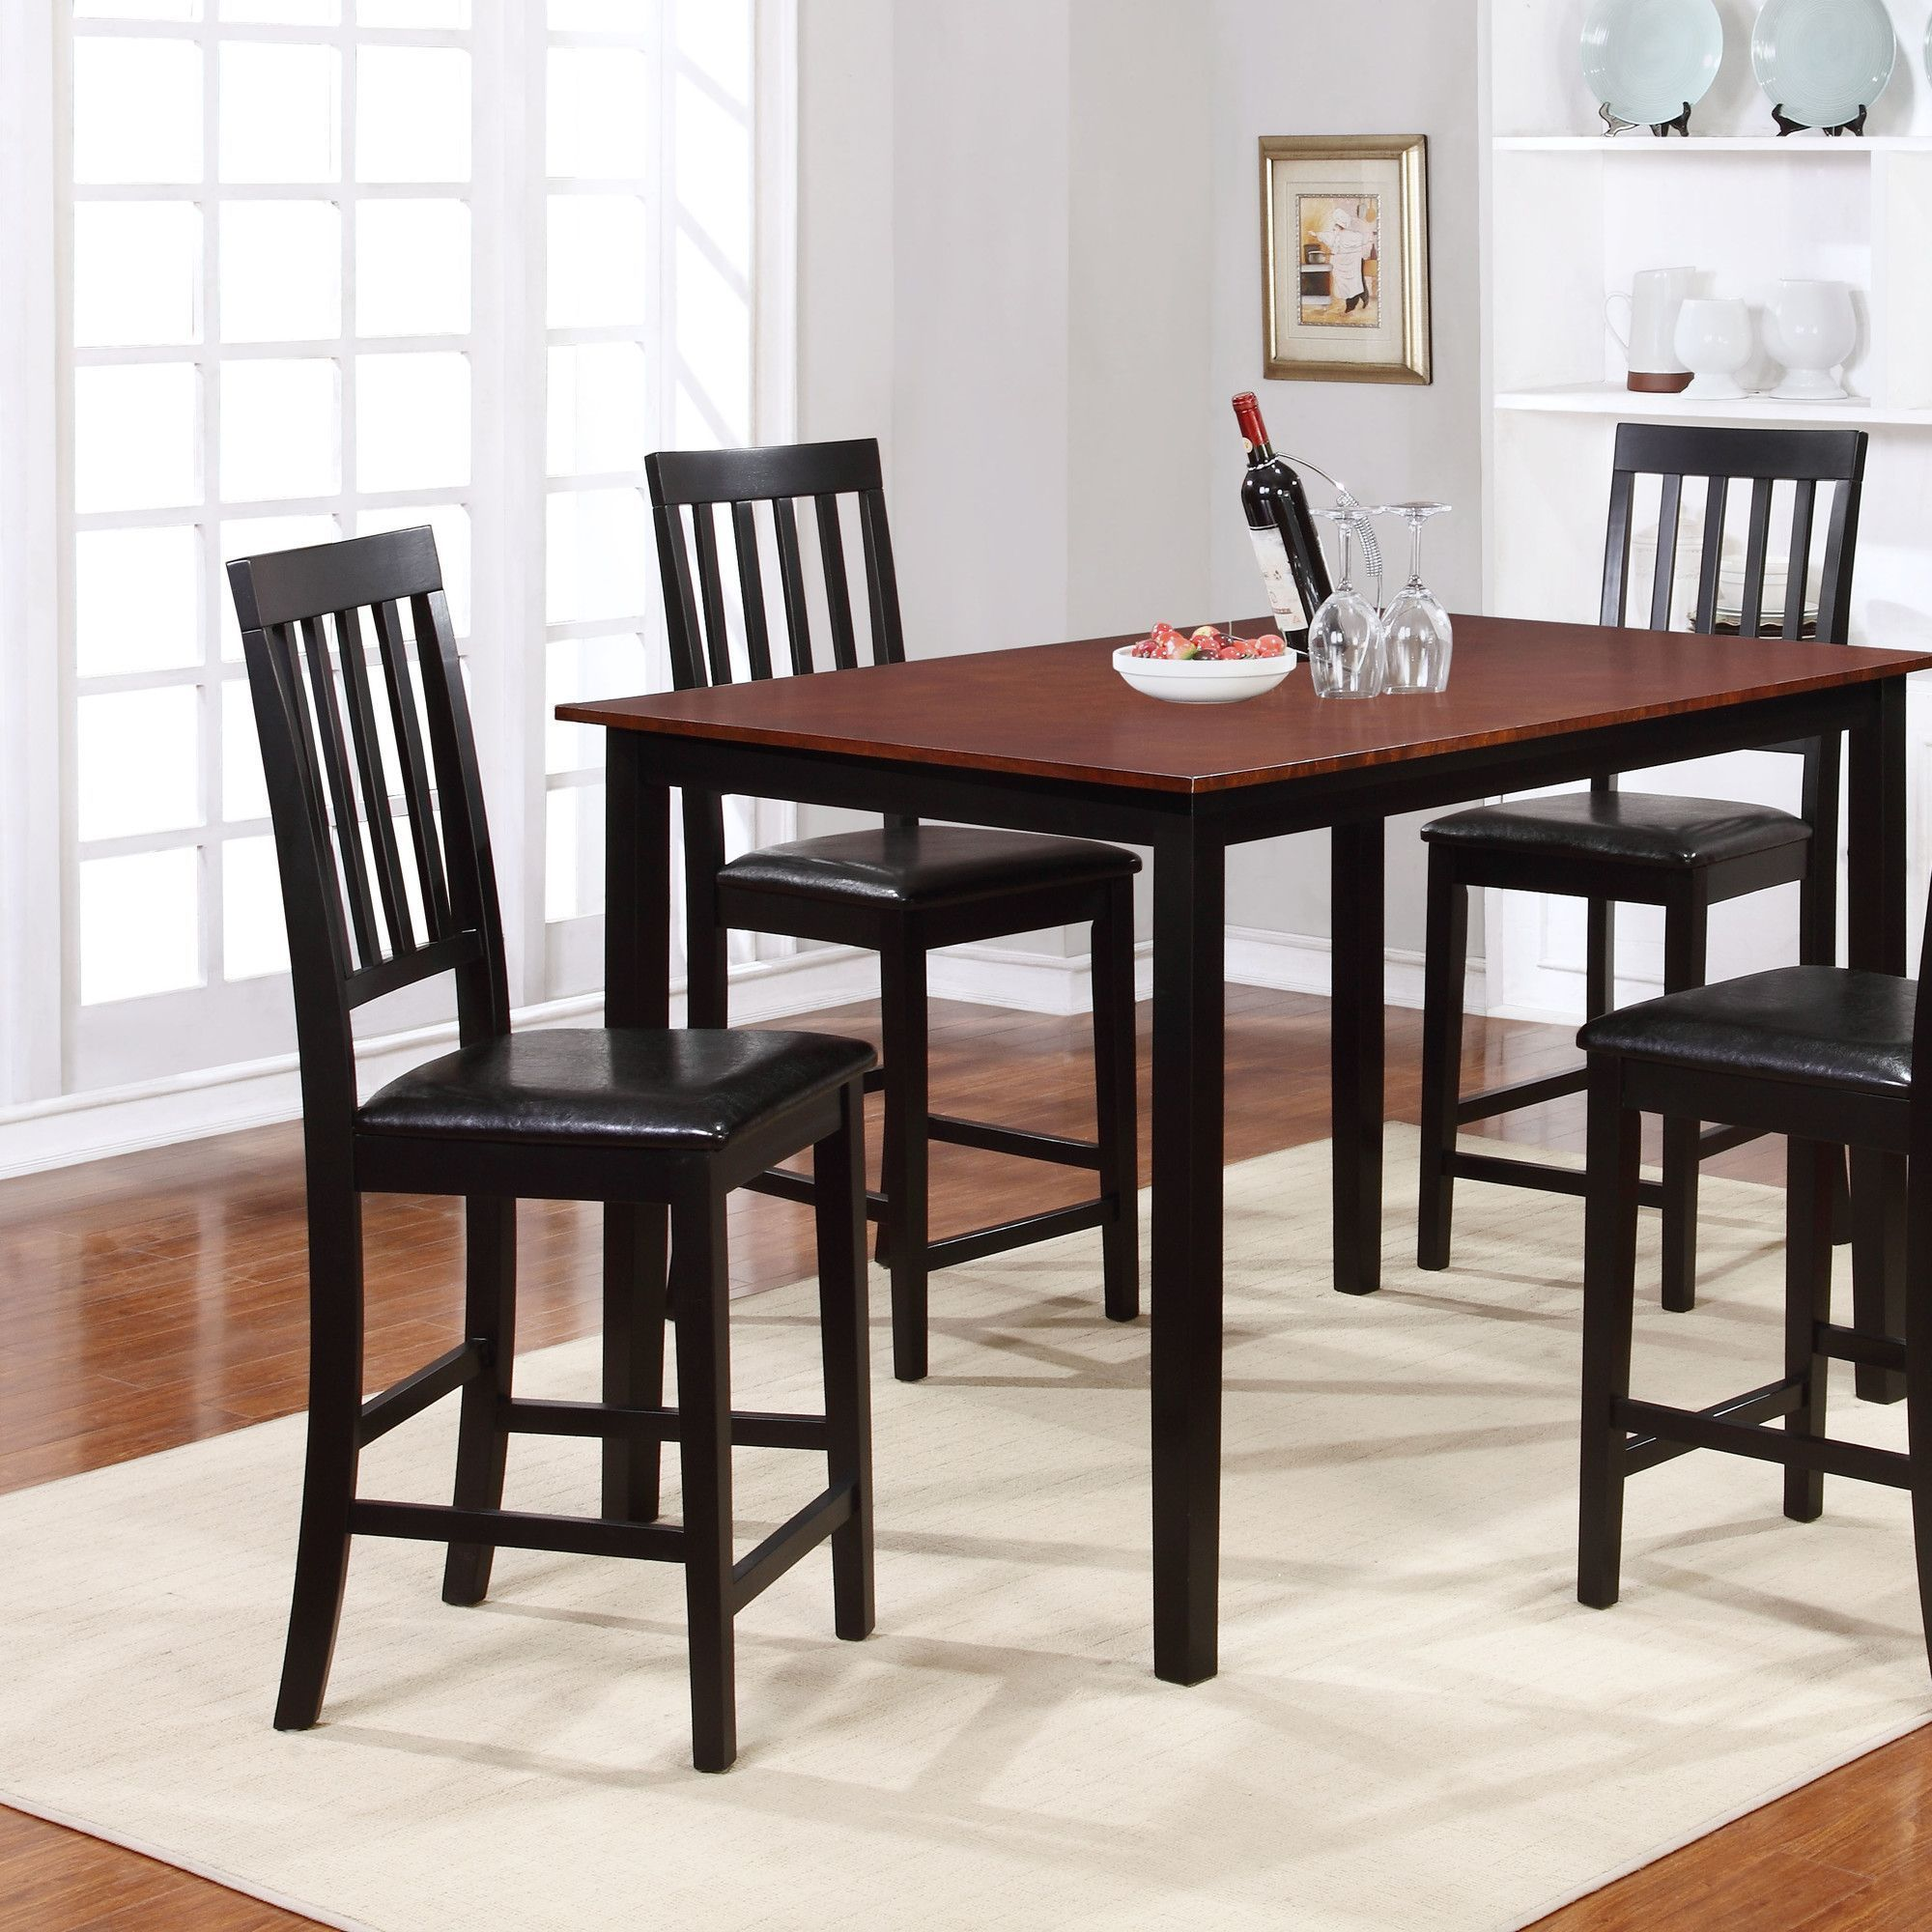 Andtree Counter Height Dining Table #Counterheighttablerectangle